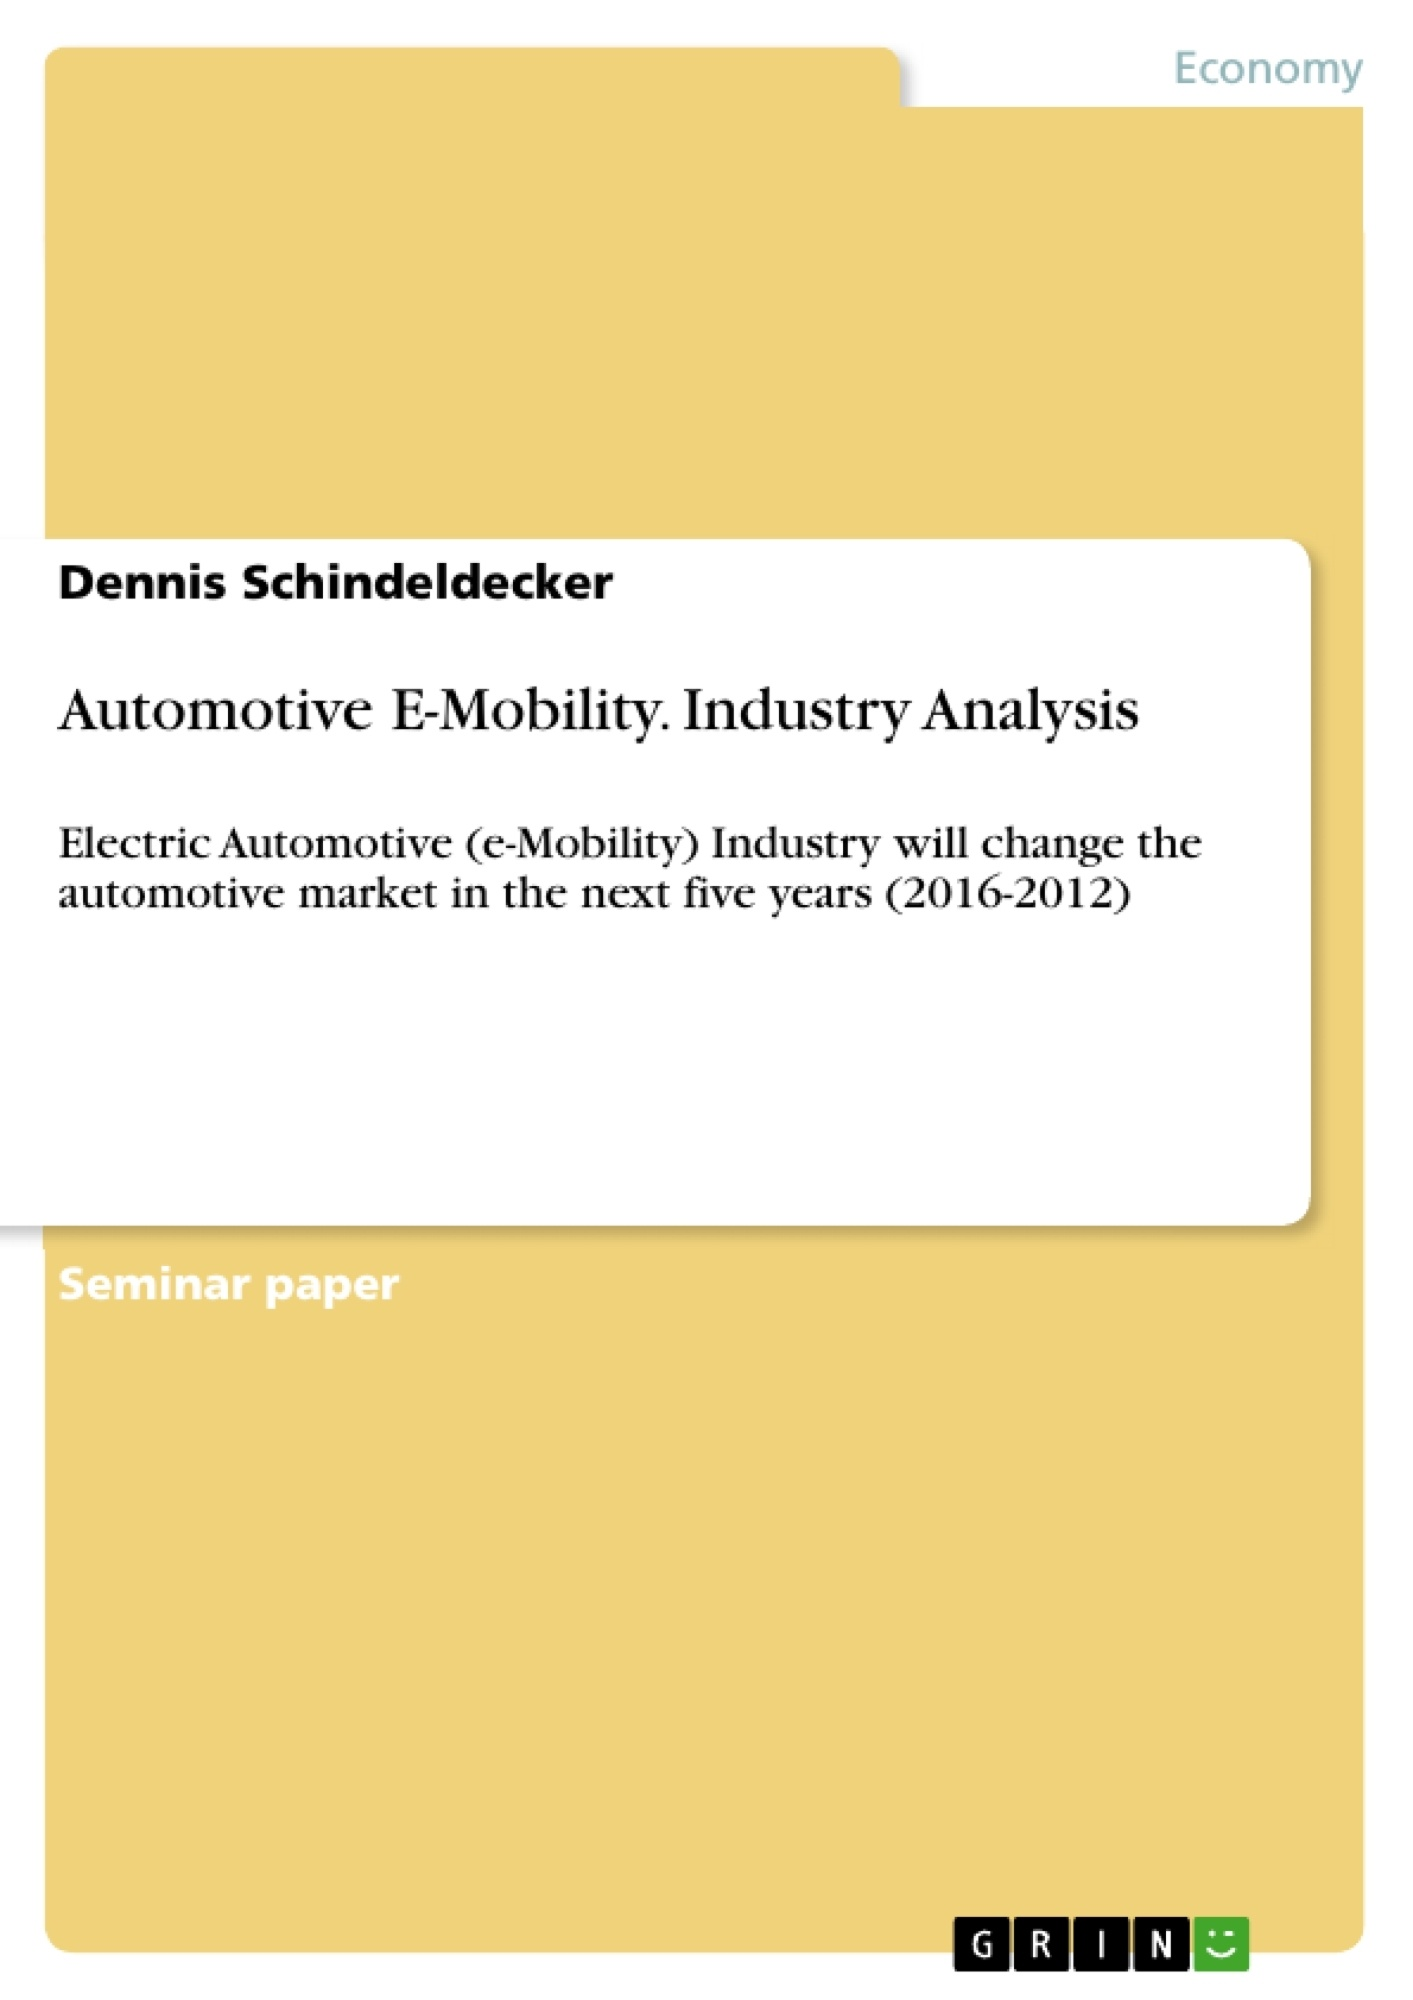 Title: Automotive E-Mobility. Industry Analysis